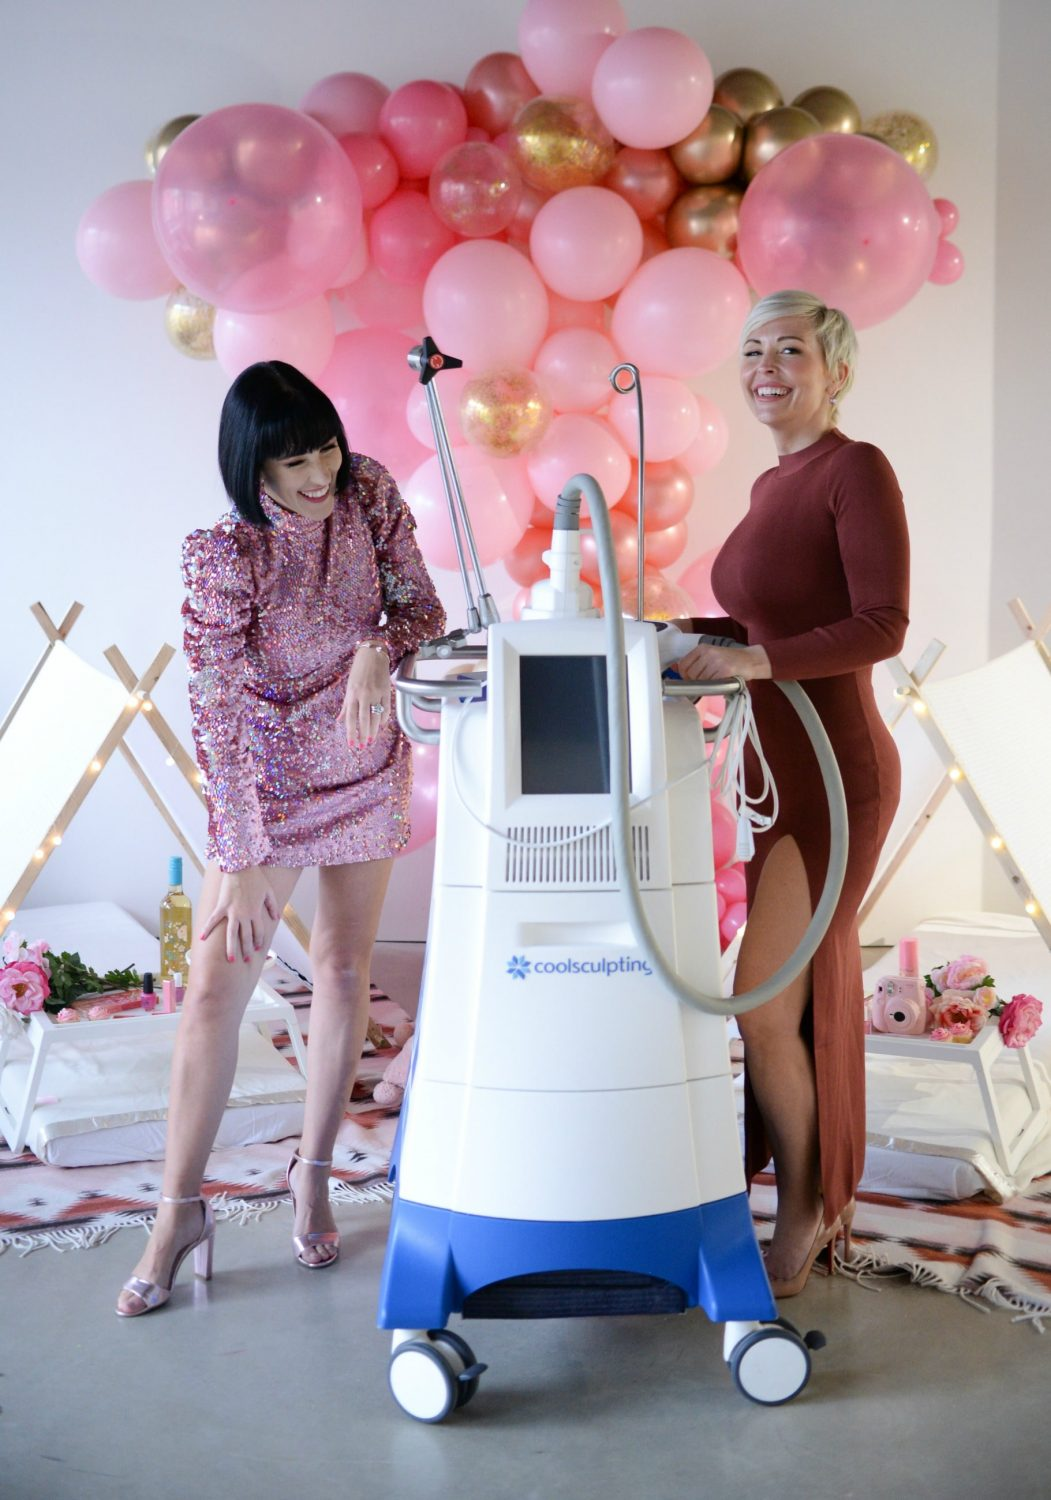 Freezing the Fat with Coolsculpting